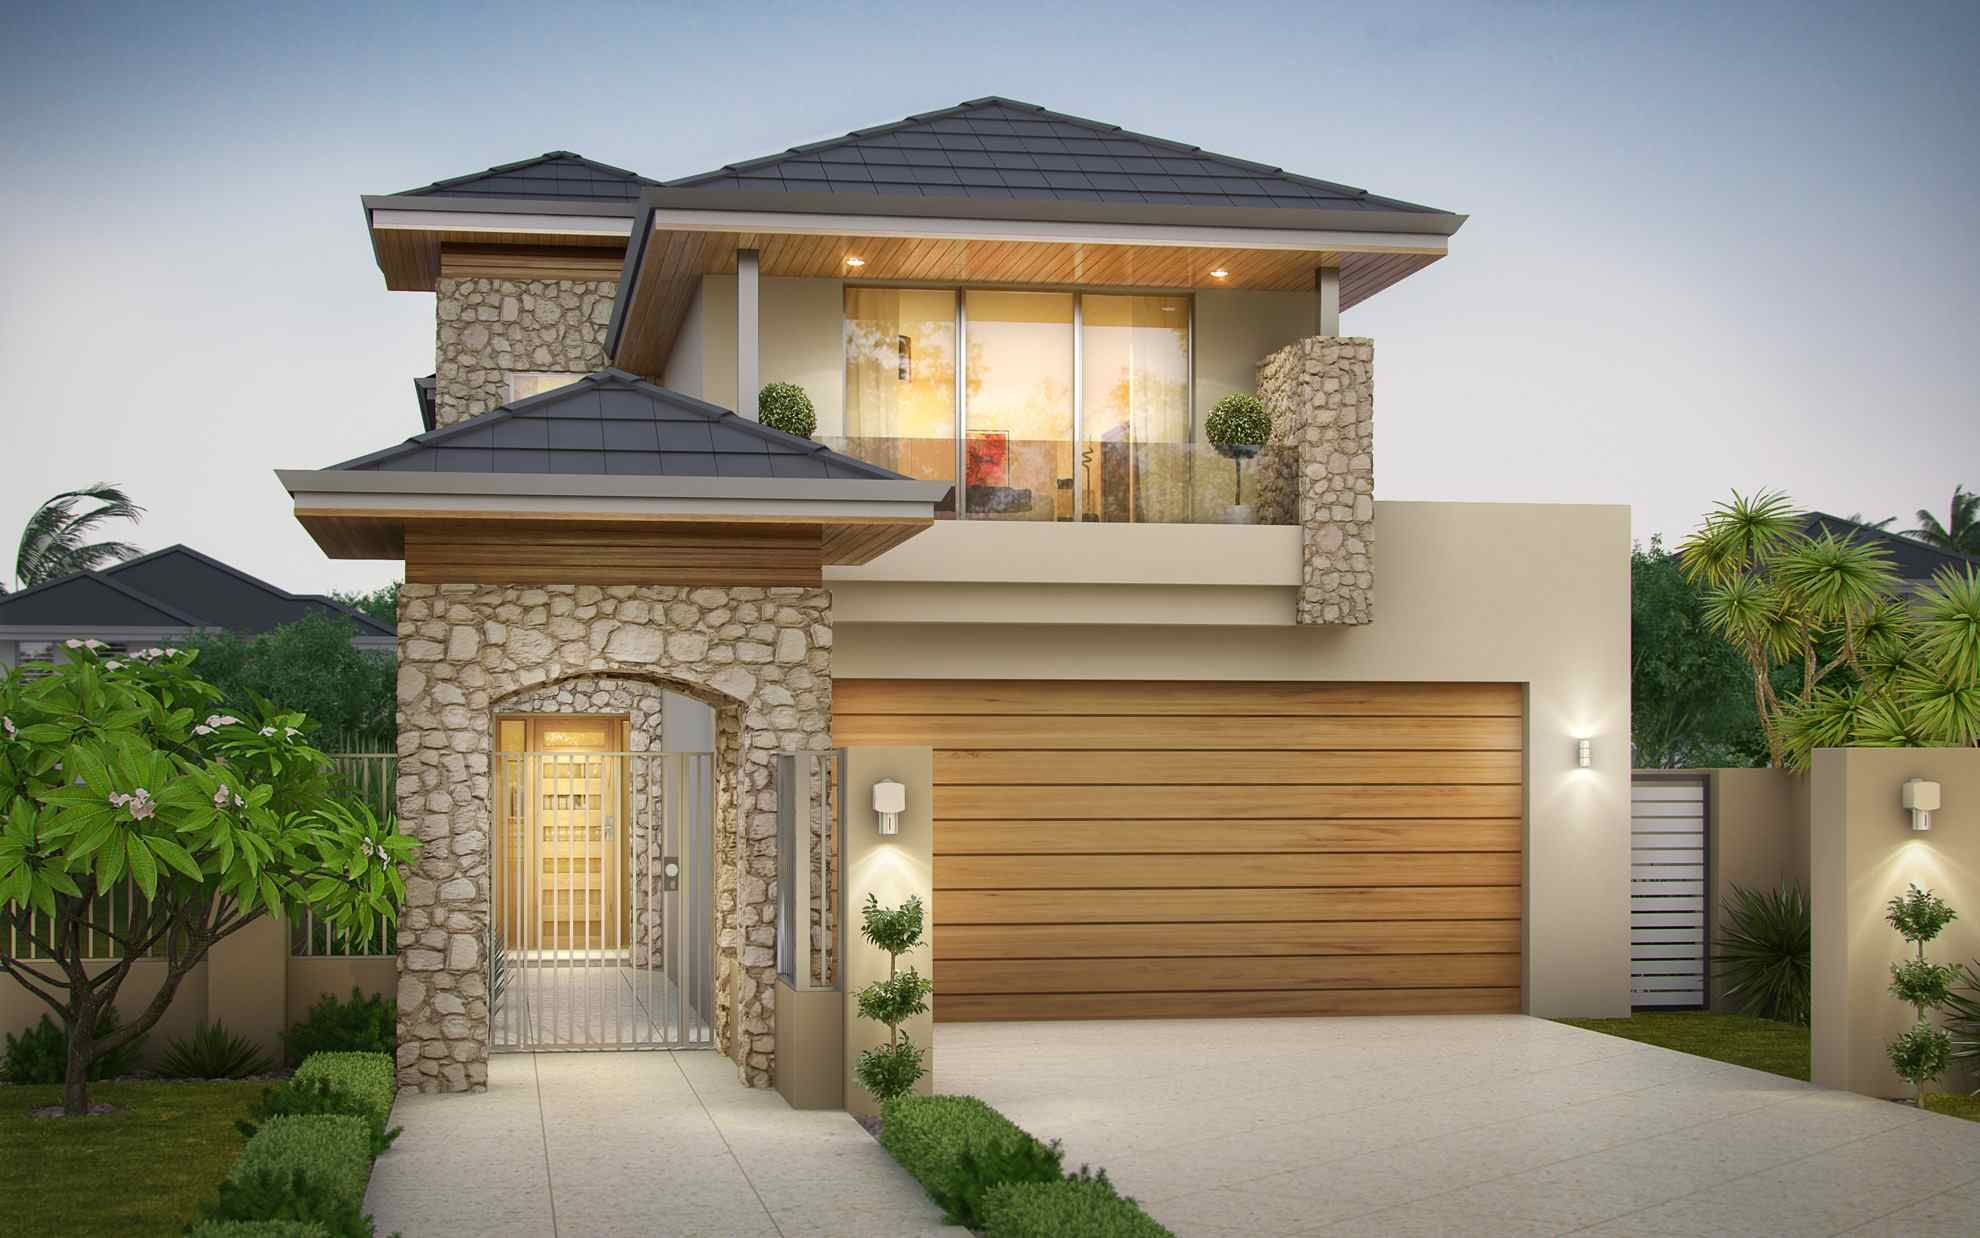 images about House Designs on Pinterest   Case Study  Perth       images about House Designs on Pinterest   Case Study  Perth and Study